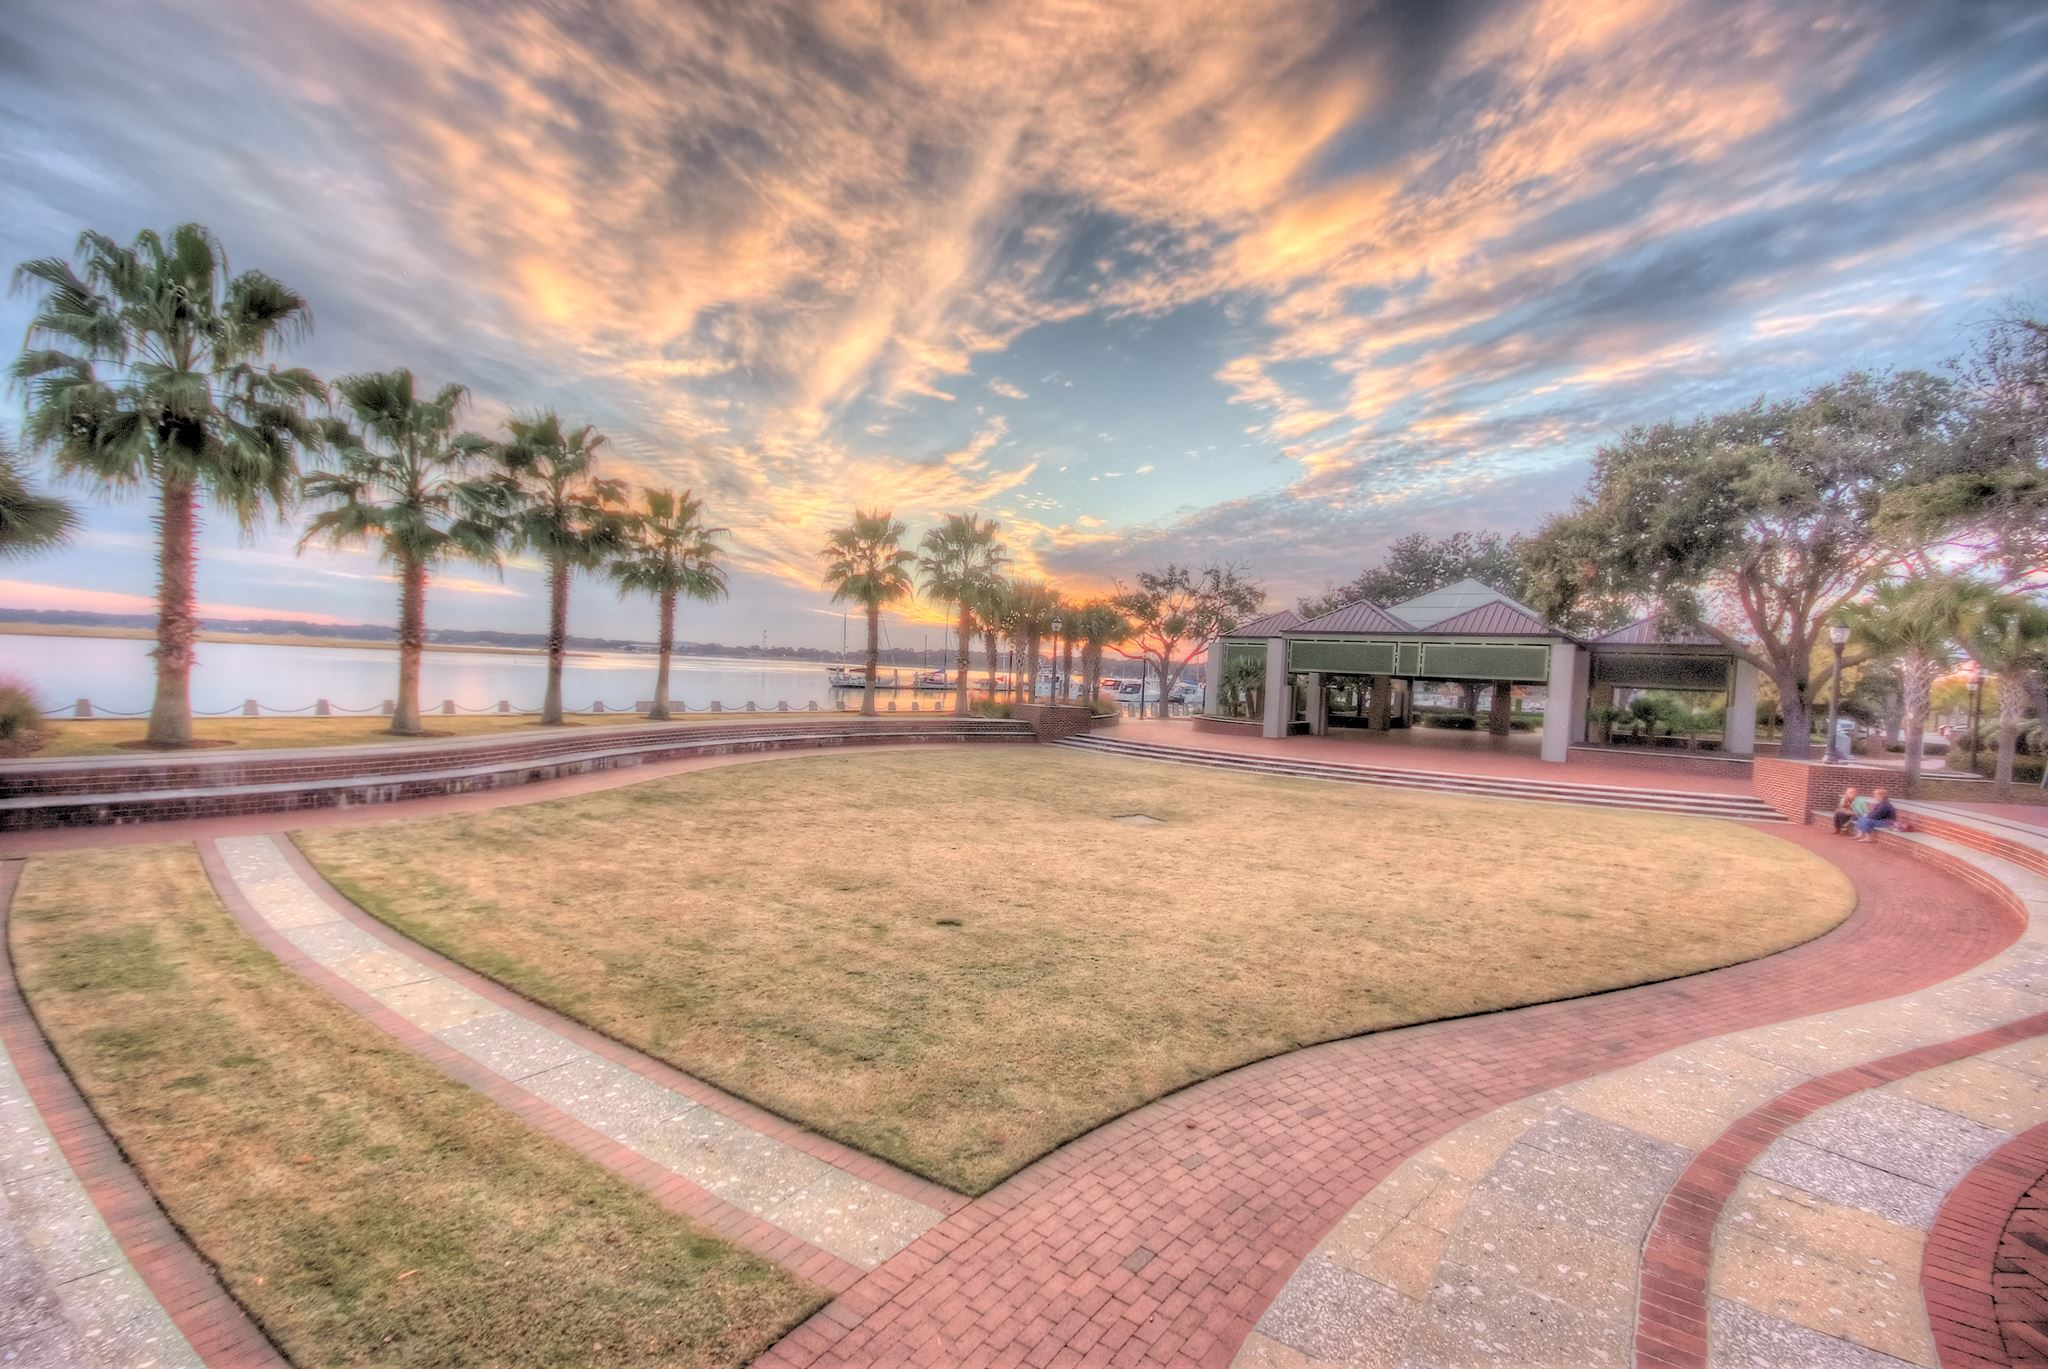 henry chambers waterfront park